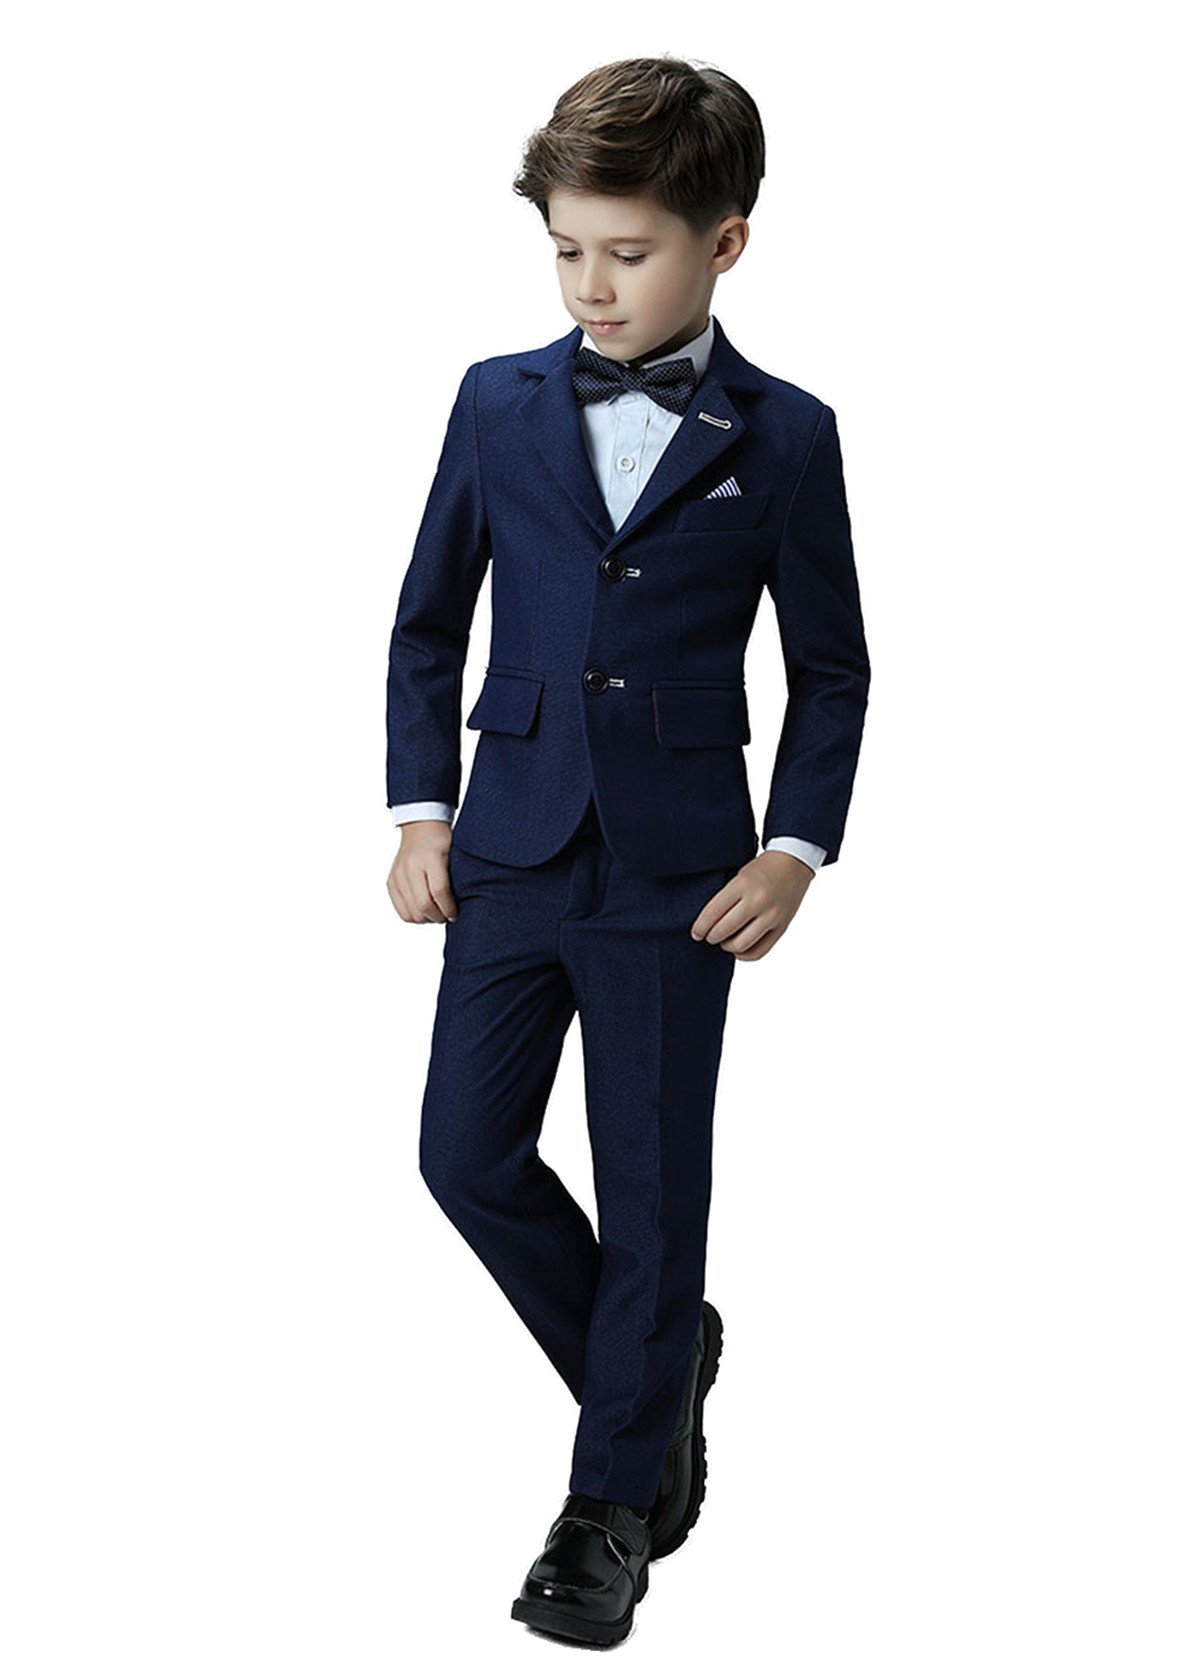 Yanlu Boys Formal Suits Silm Fit Dresswear Boy Suit with Blazer Pants Shirt and Bow Tie Size 4T Navy Blue